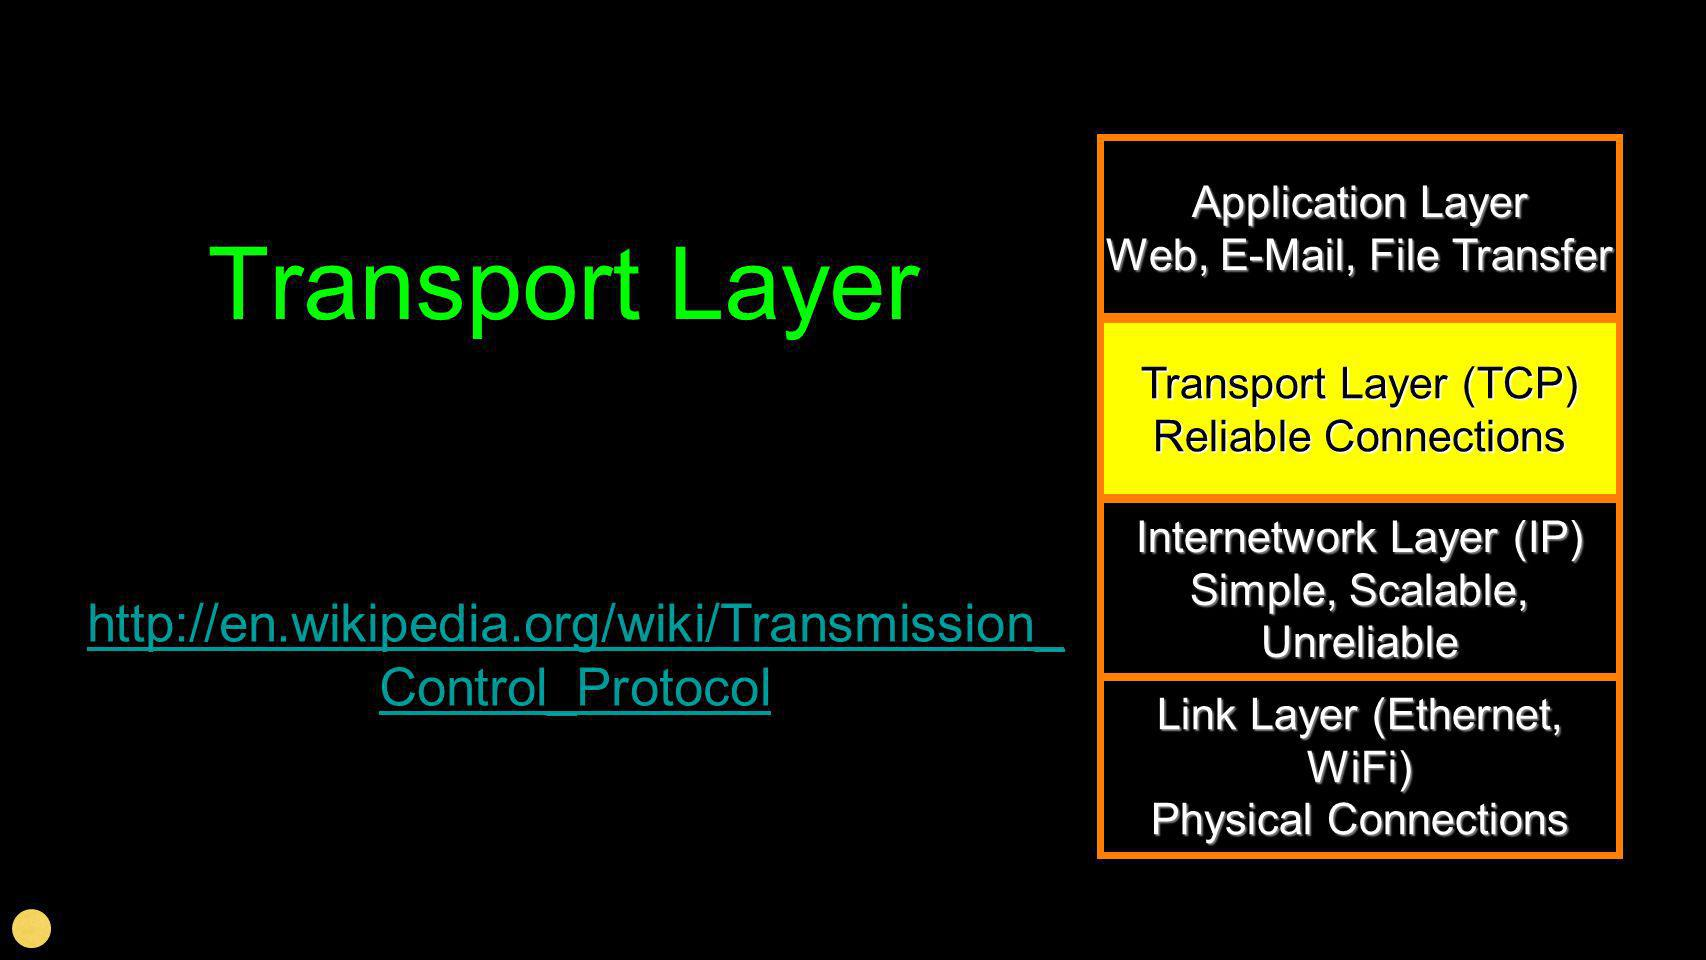 Transport Layer Application Layer Web, E-Mail, File Transfer Transport Layer (TCP) Reliable Connections Internetwork Layer (IP) Simple, Scalable, Unre